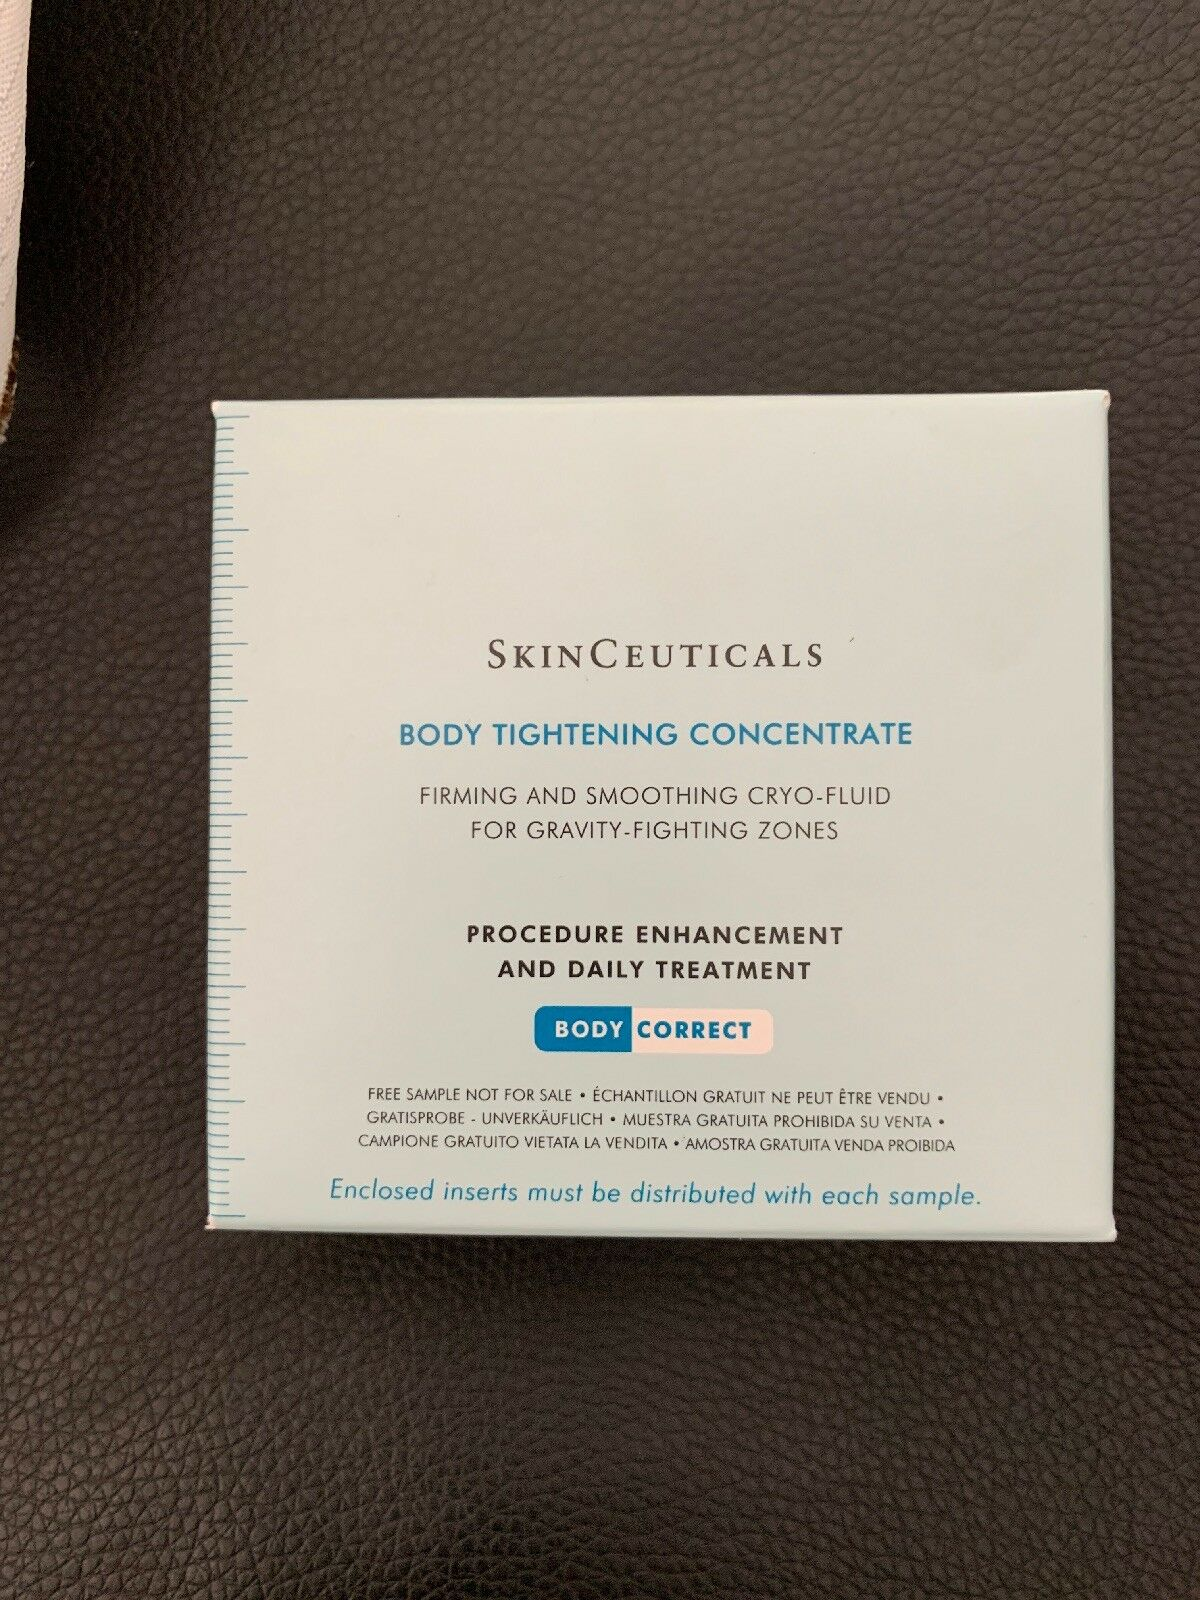 10 Samples Skinceuticals Body Tightening Concentrate Exp 5/20 Free Shipping